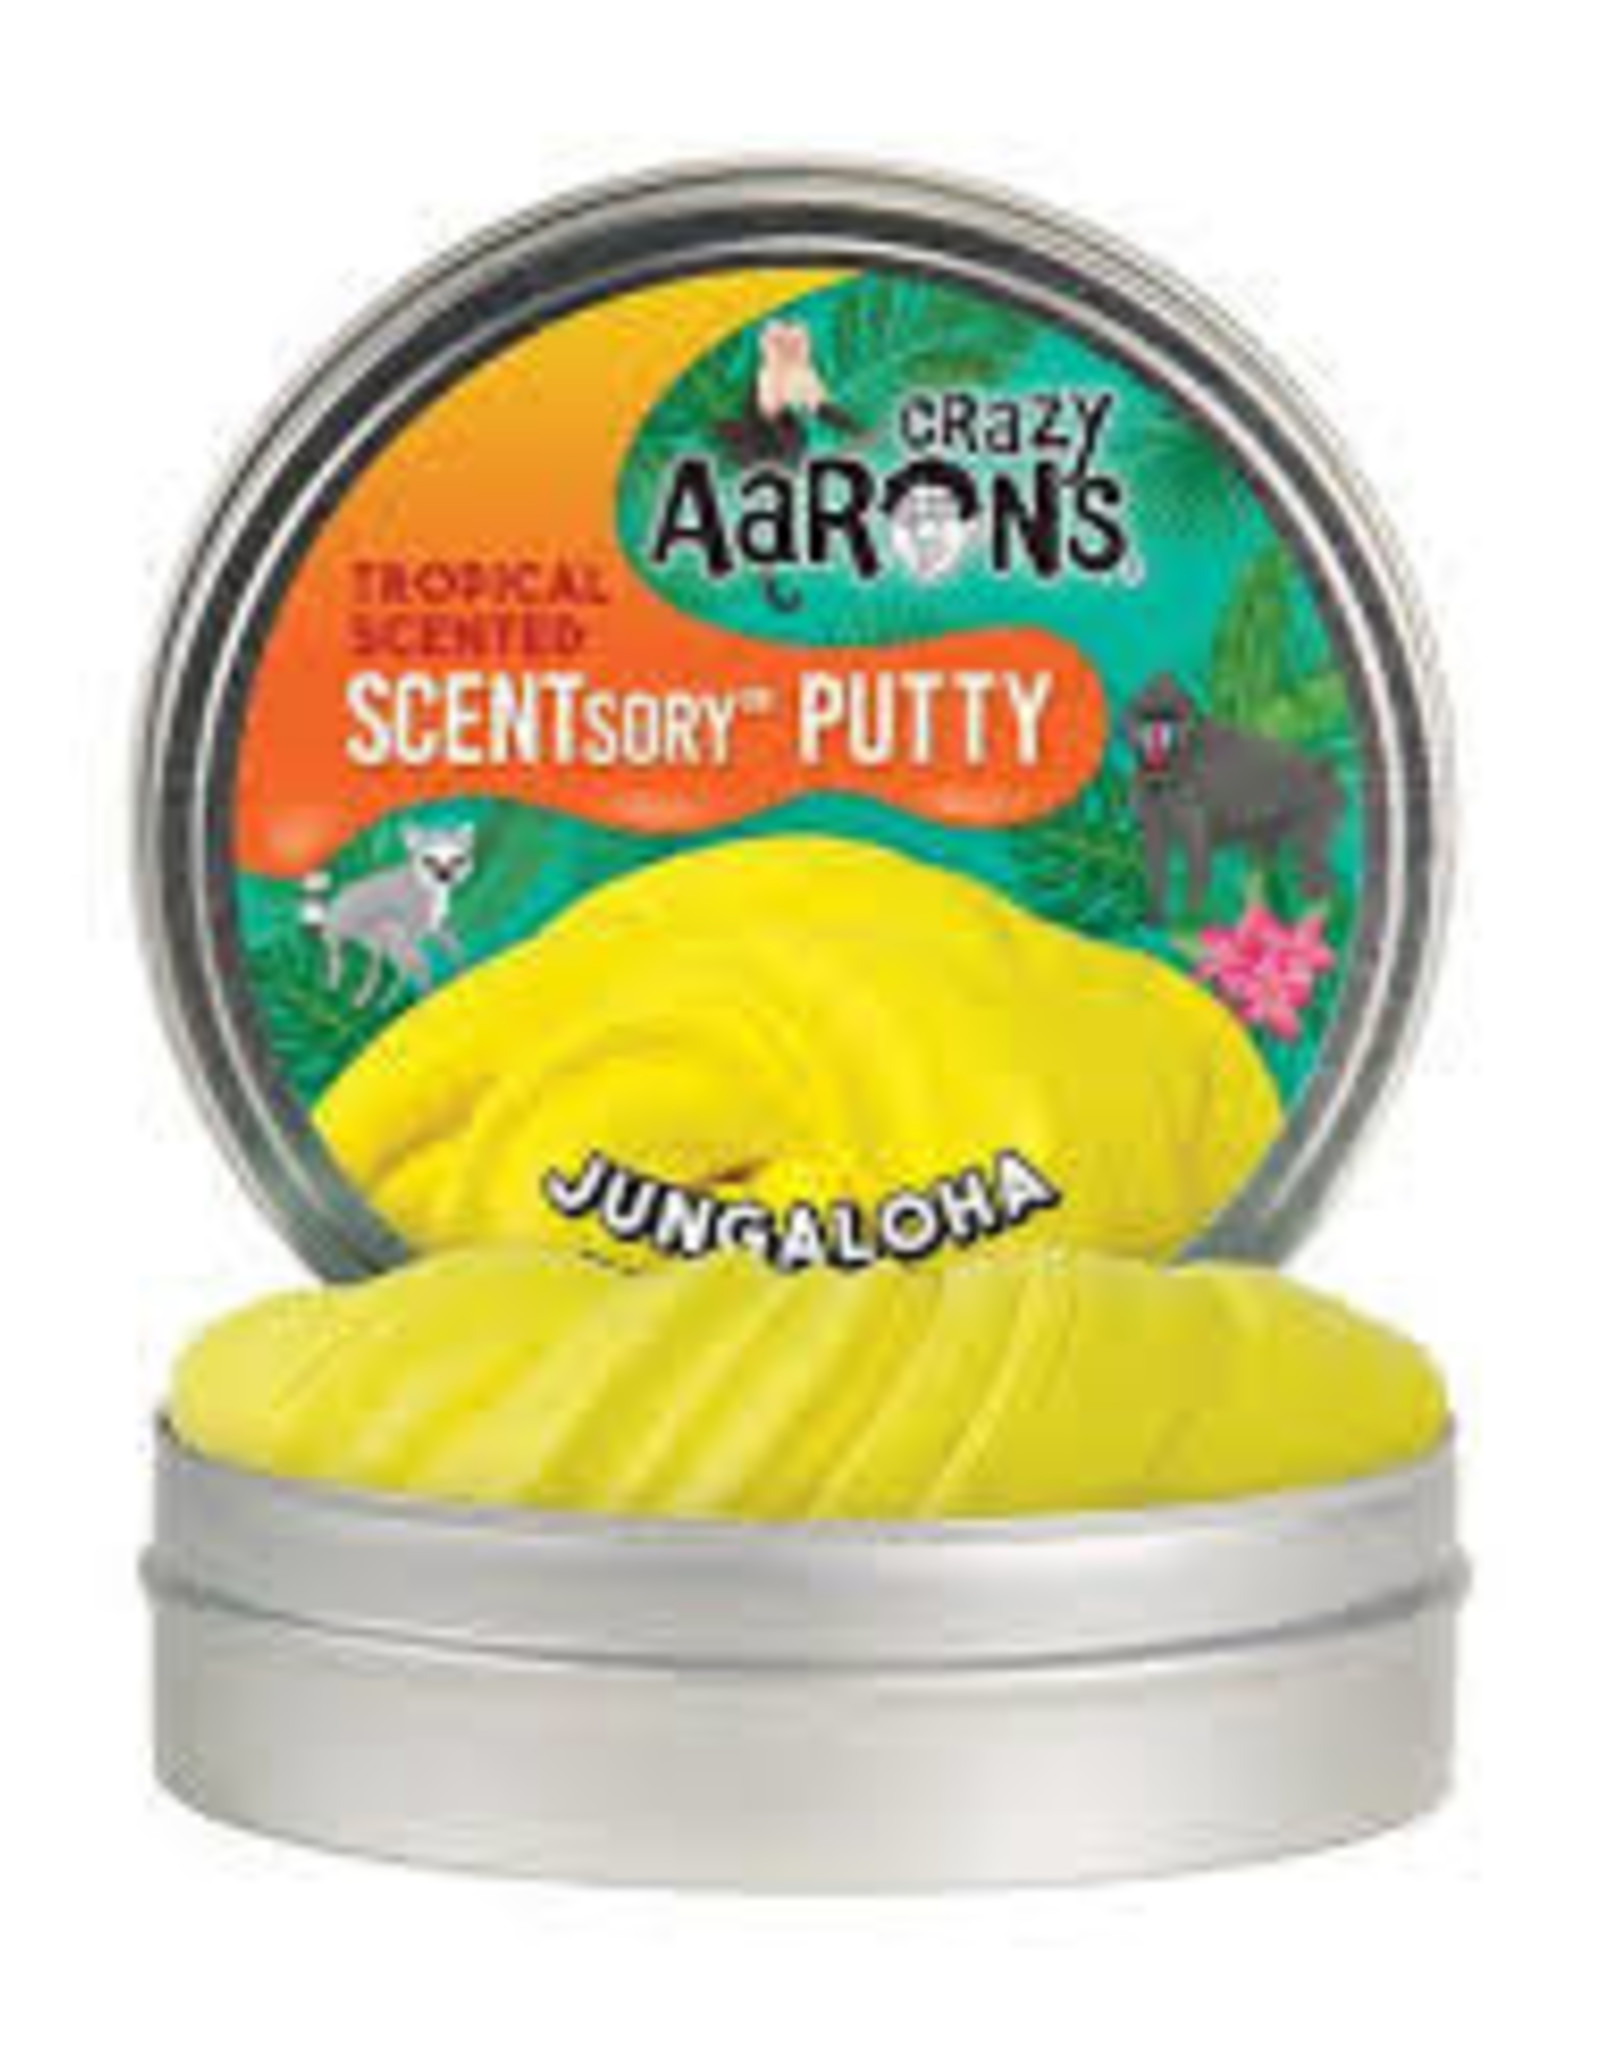 "Crazy Aaron's Thinking Putty Jungaloha 2.75"" Scented"